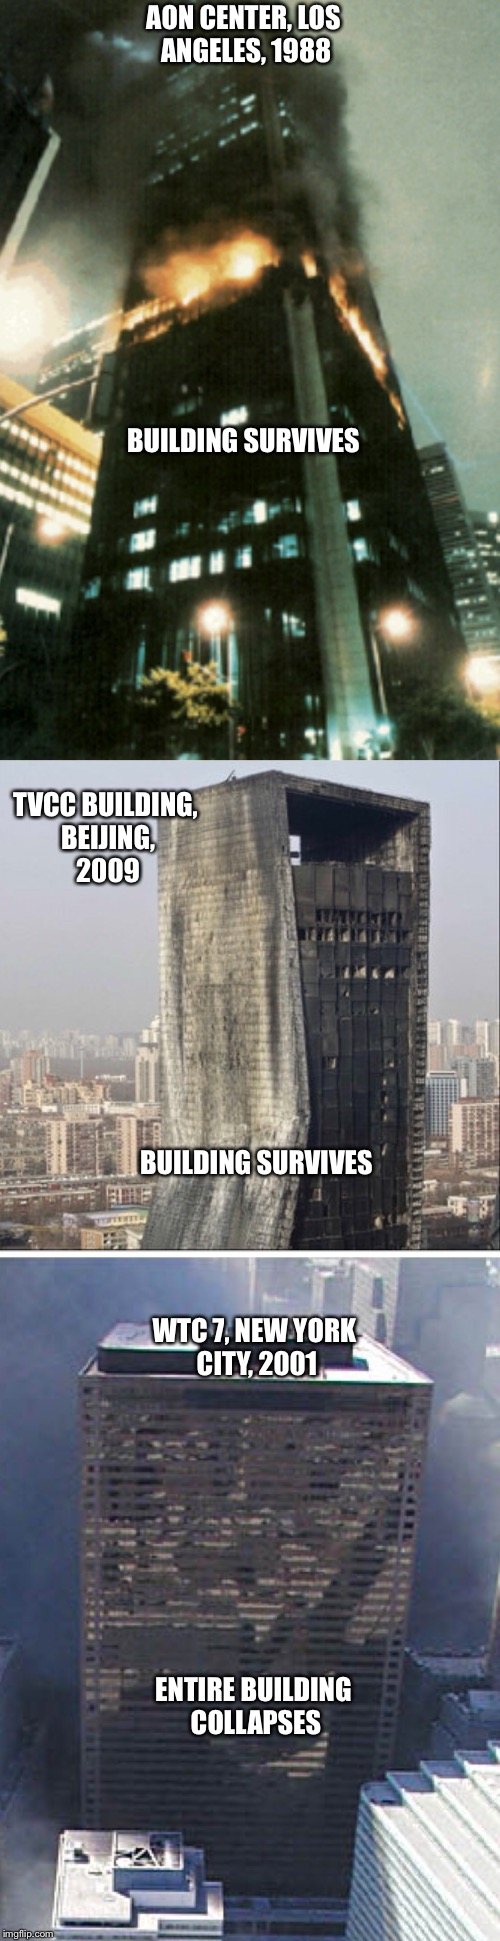 How? | AON CENTER, LOS ANGELES, 1988 BUILDING SURVIVES TVCC BUILDING, BEIJING, 2009 BUILDING SURVIVES WTC 7, NEW YORK CITY, 2001 ENTIRE BUILDING CO | image tagged in building,9/11,1980s,collapse | made w/ Imgflip meme maker